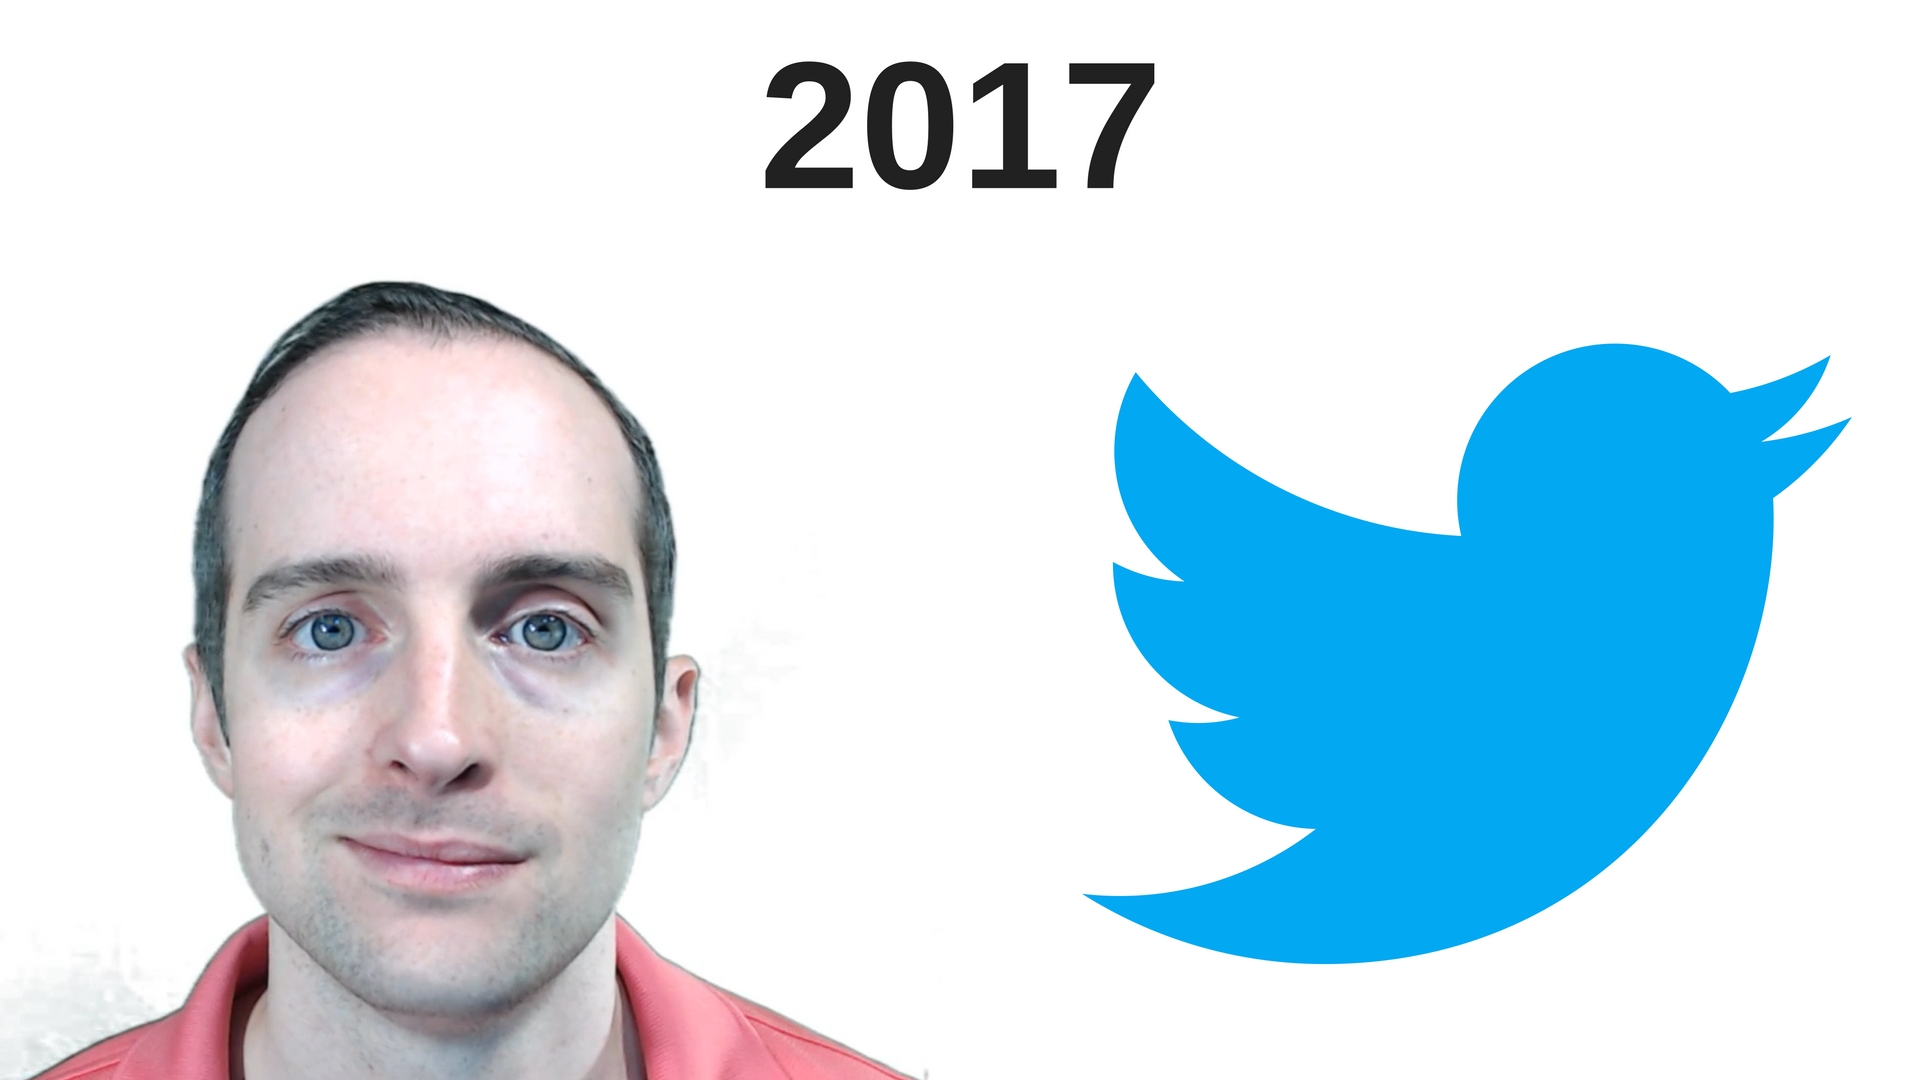 Twitter Marketing in 2017 with ManageFlitter for Following + Unfollowing + Scheduling Tweets!